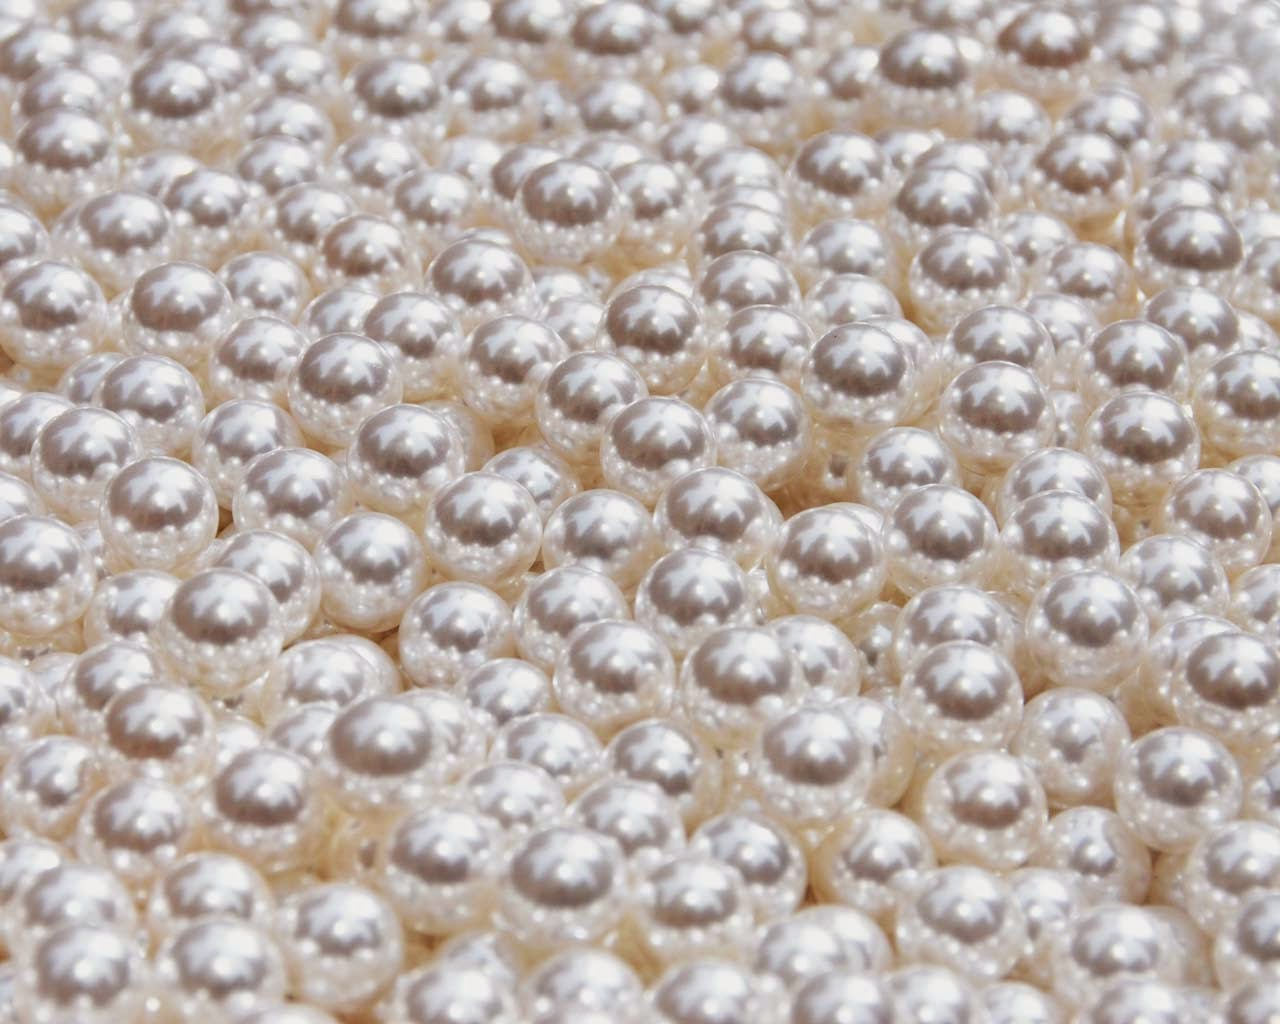 pearls free desktop background by Jeanne Selep